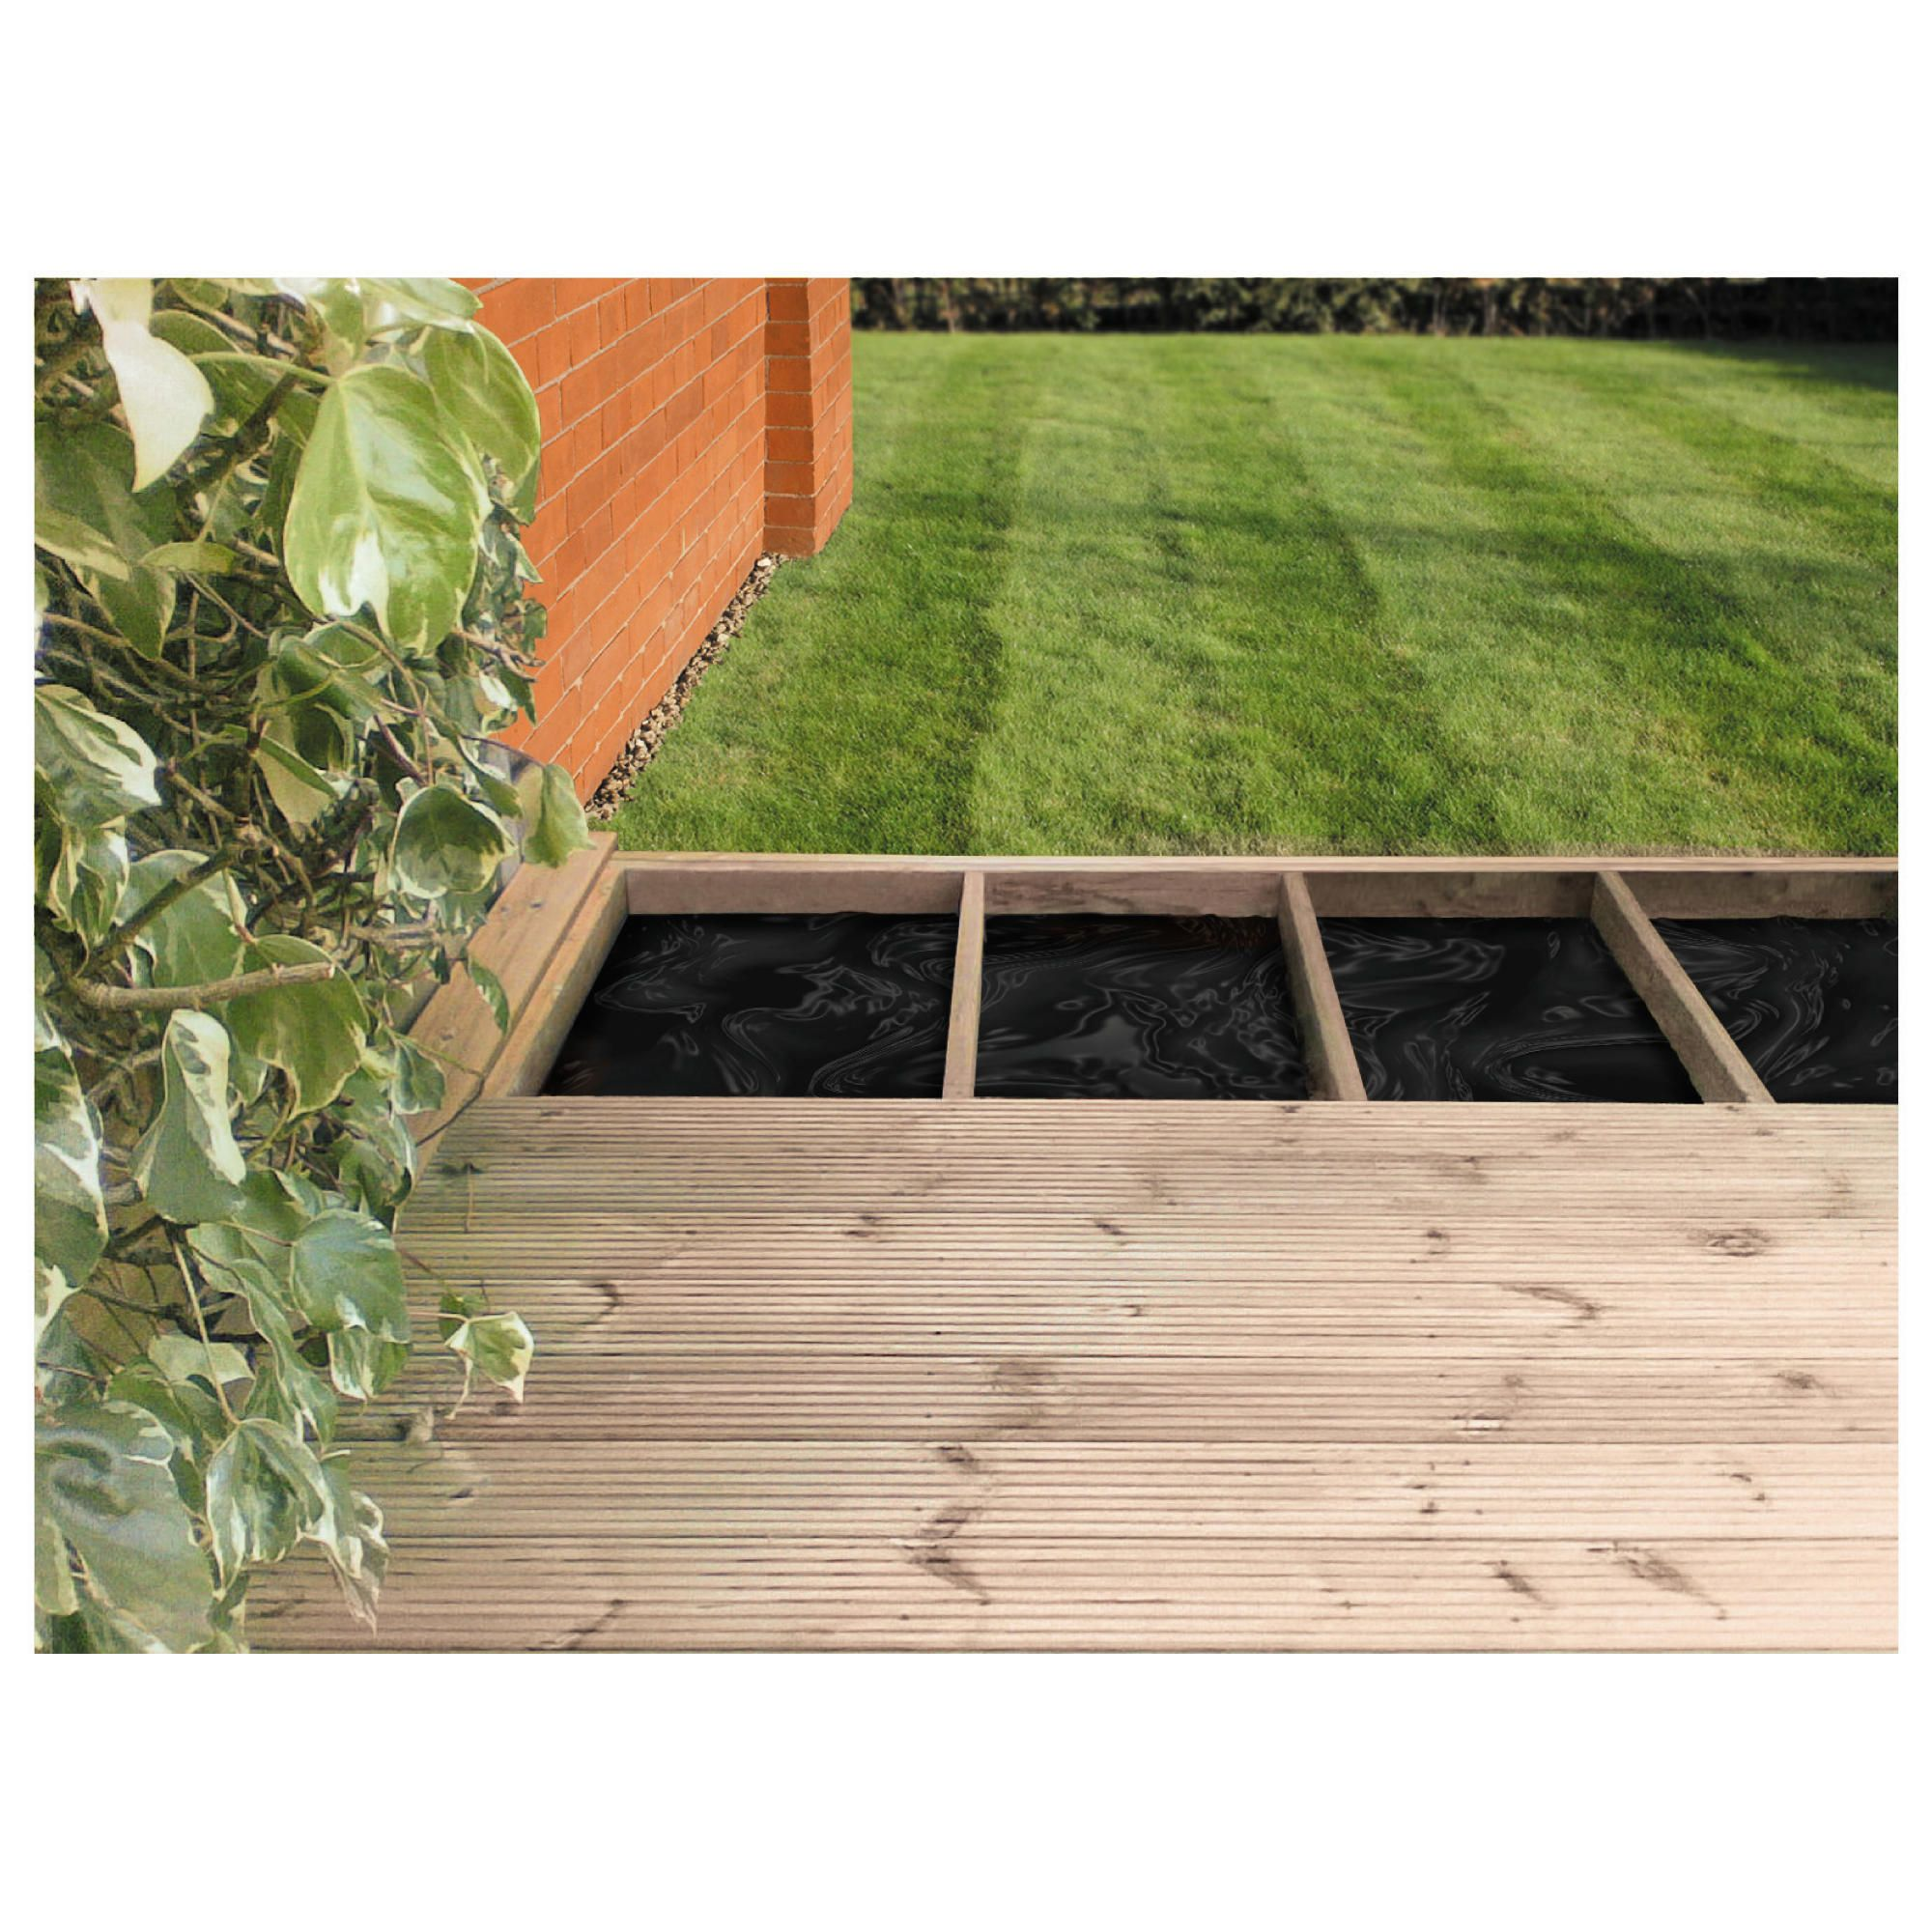 Finnlife Deck and Joist Pack (4.8mx4.8m) at Tesco Direct